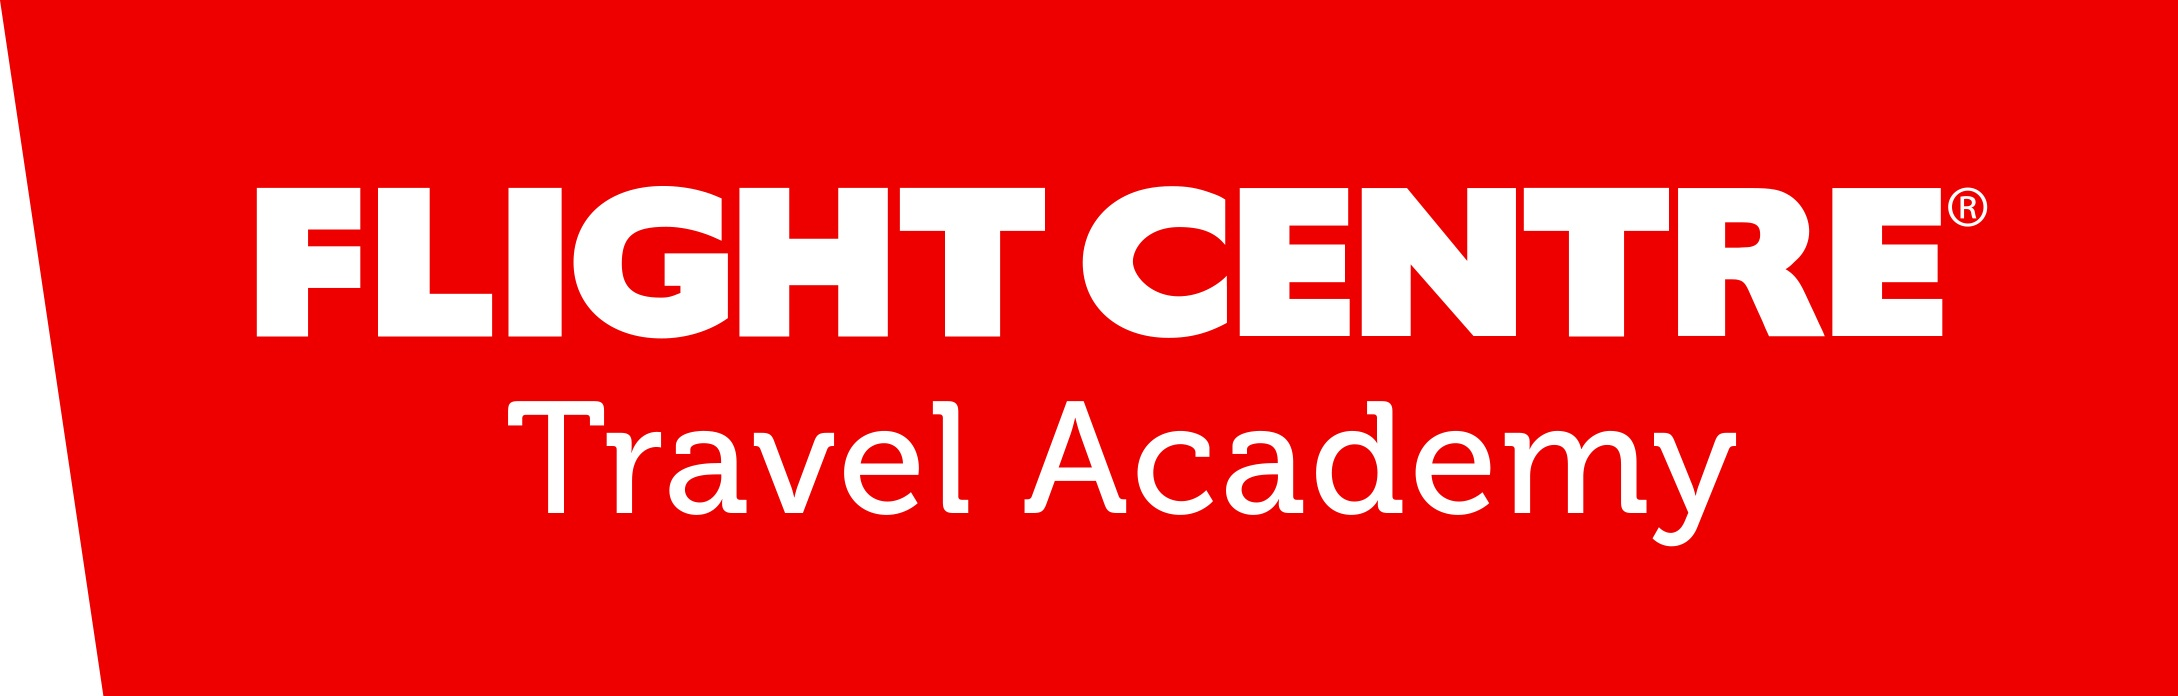 Flight Centre Travel Academy